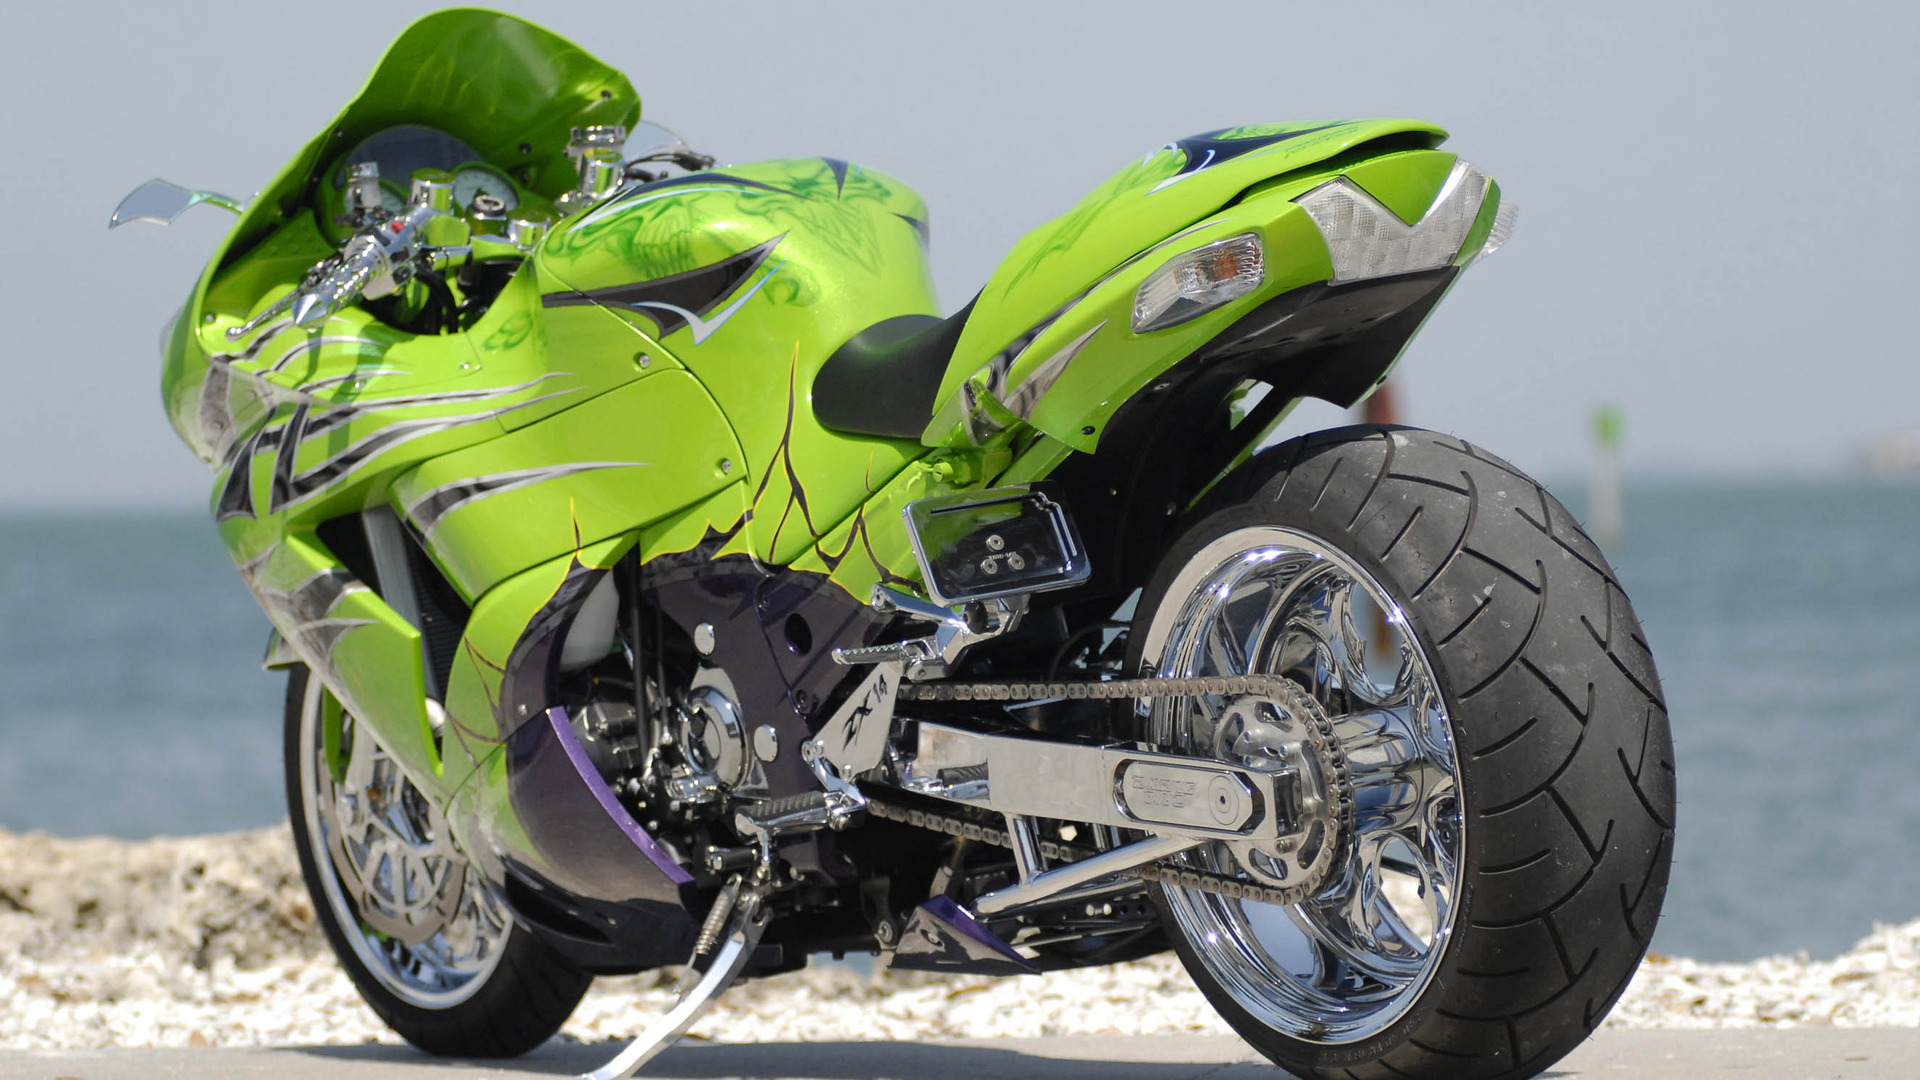 Super Bikes Motorbikes Bike: 47 Cool Bike Wallpapers/Backgrounds In HD For Free Download